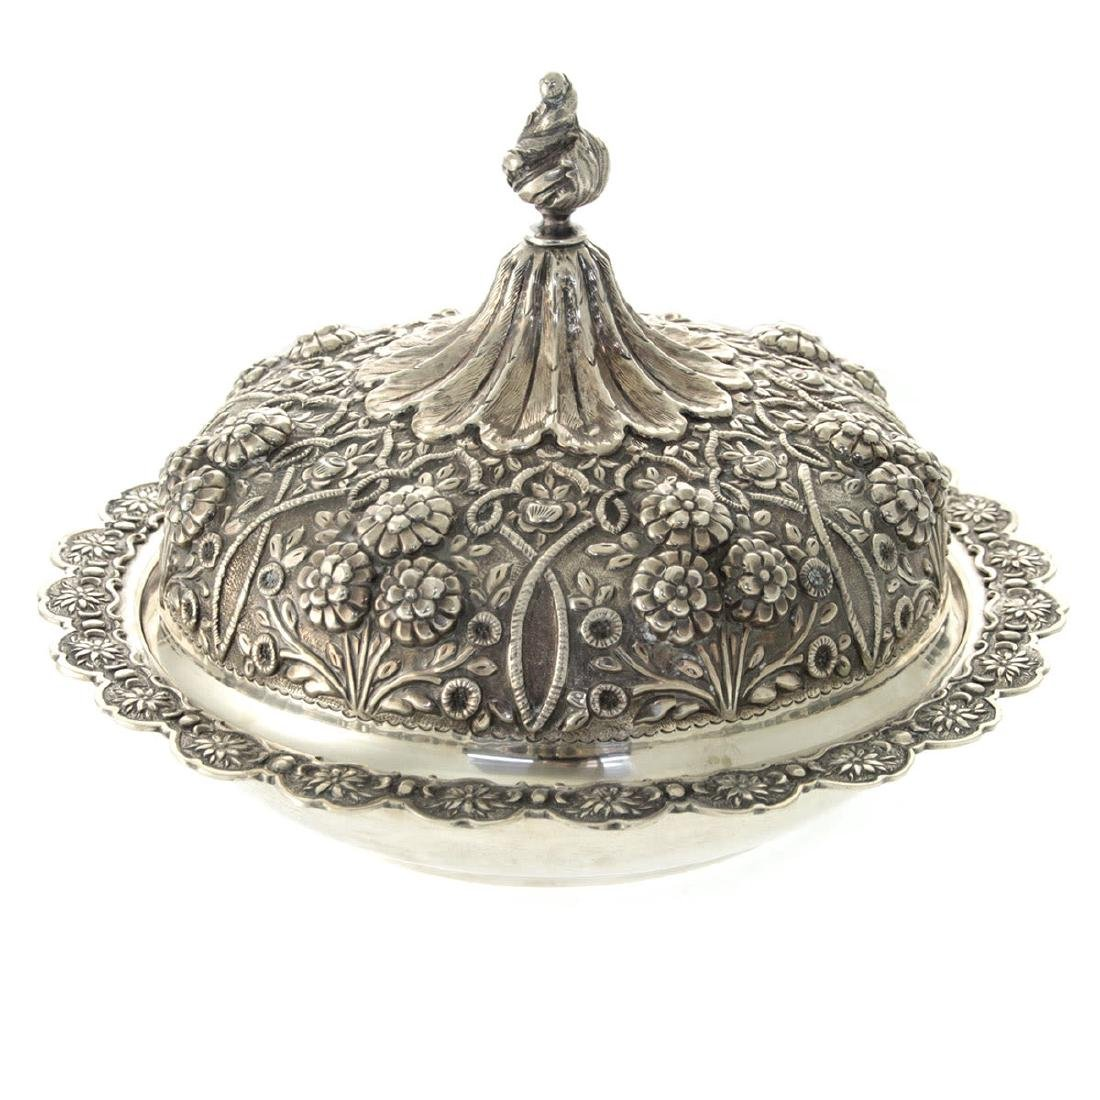 Impressive Sterling Silver Serving Dish Bowl and Cover.